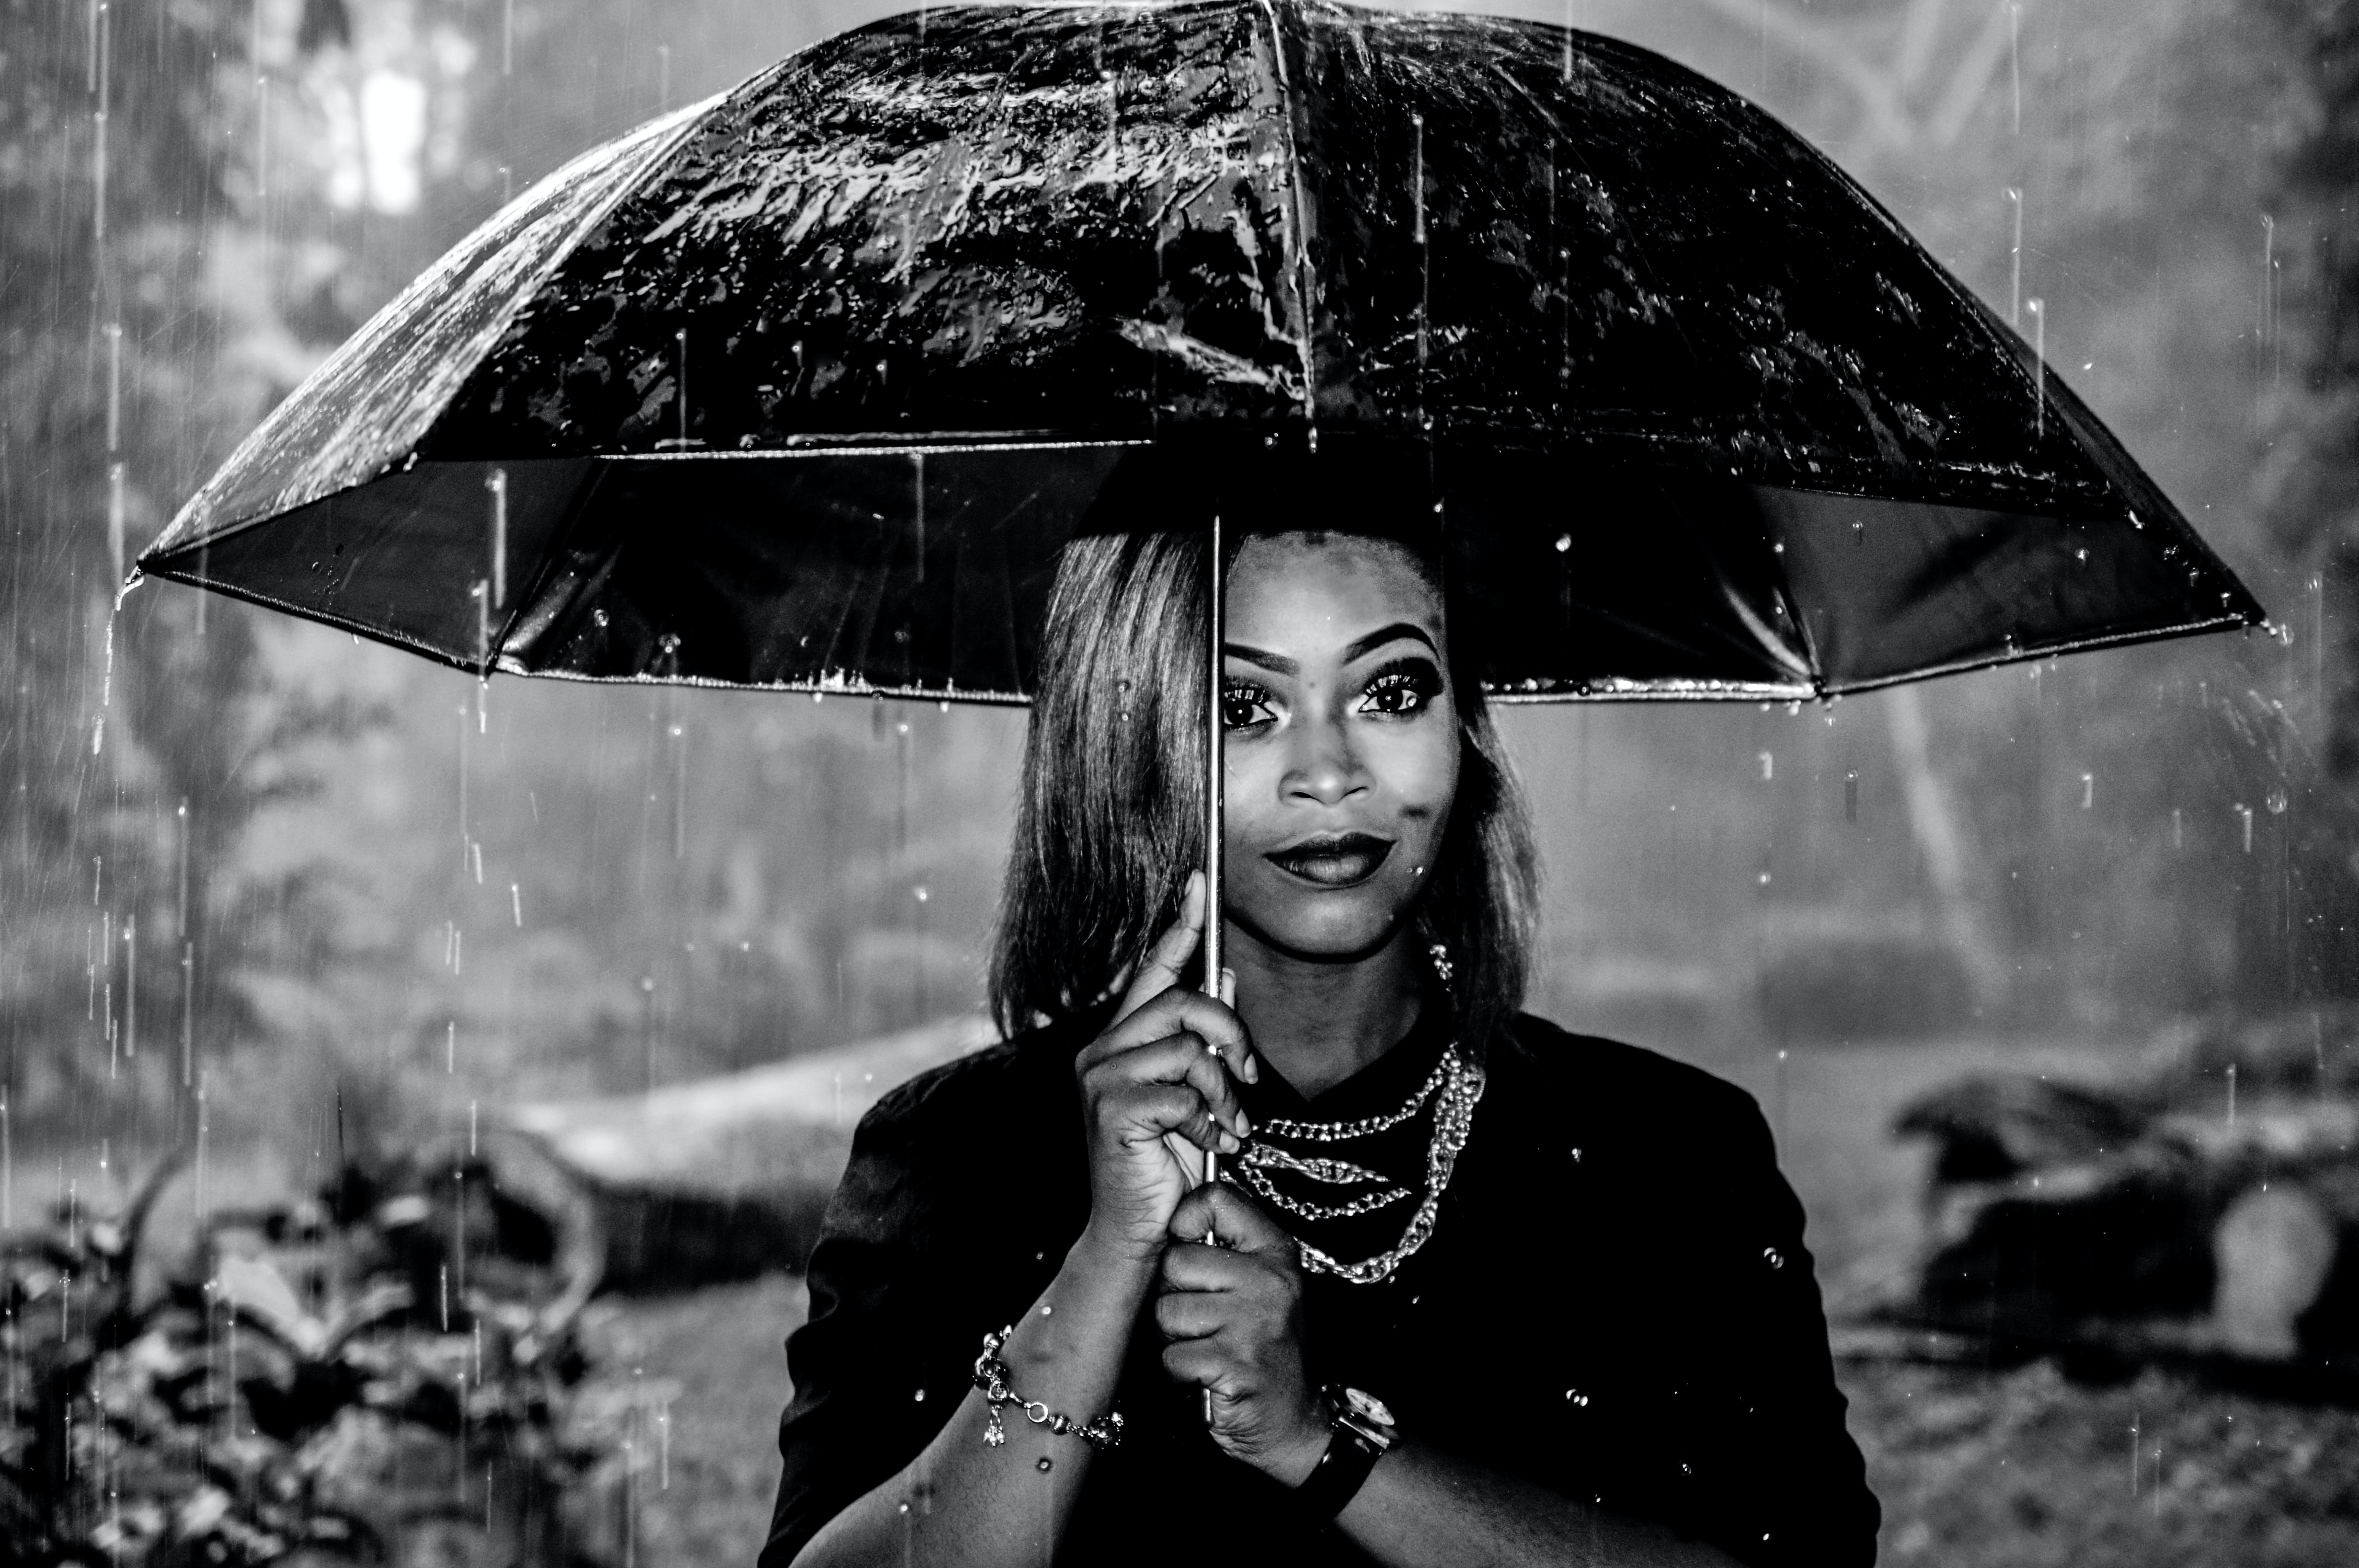 Black and white shot of fashionable woman with necklaces under umbrella in pouring rain